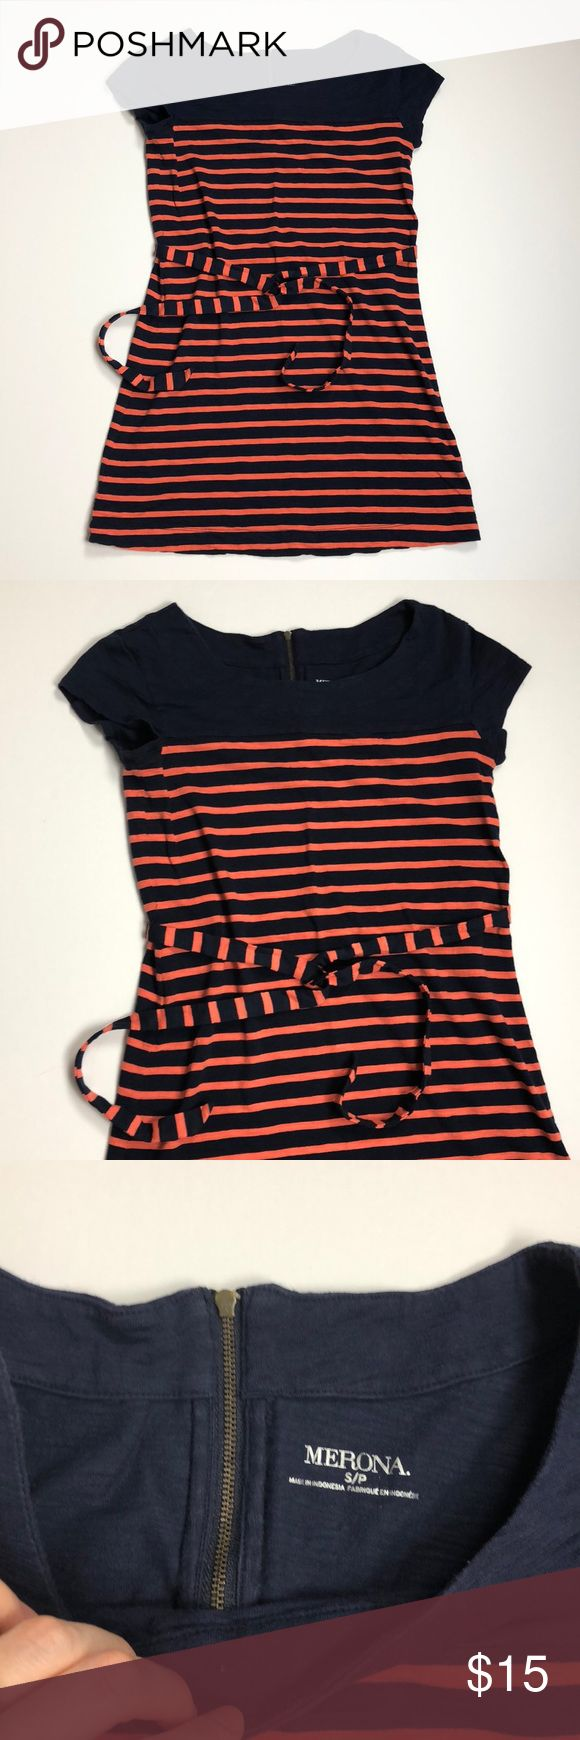 """Merona Navy And Coral Striped Dress Such a soft and lovely dress! Works for the office or casual on the weekends. 60/40 cotton and modal blend. Measures 30"""" long and falls to just above the knee. Gently worn and laundered just a few times. No fade. EUC Merona Dresses"""